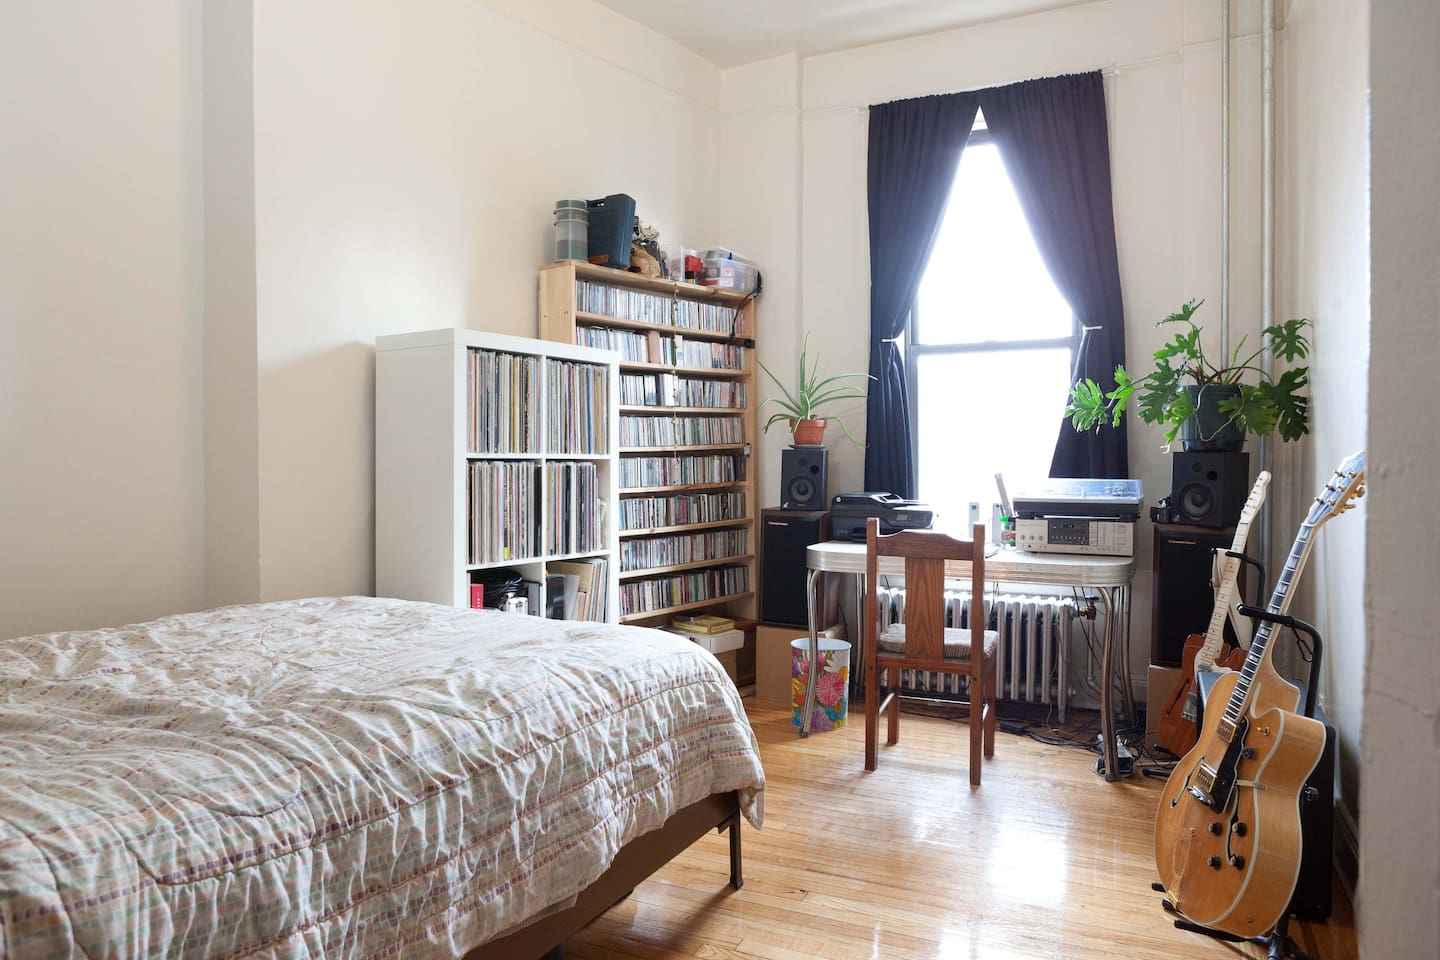 Studio Apartment Brooklyn nice studio apartment in brooklyn! - apartments for rent in